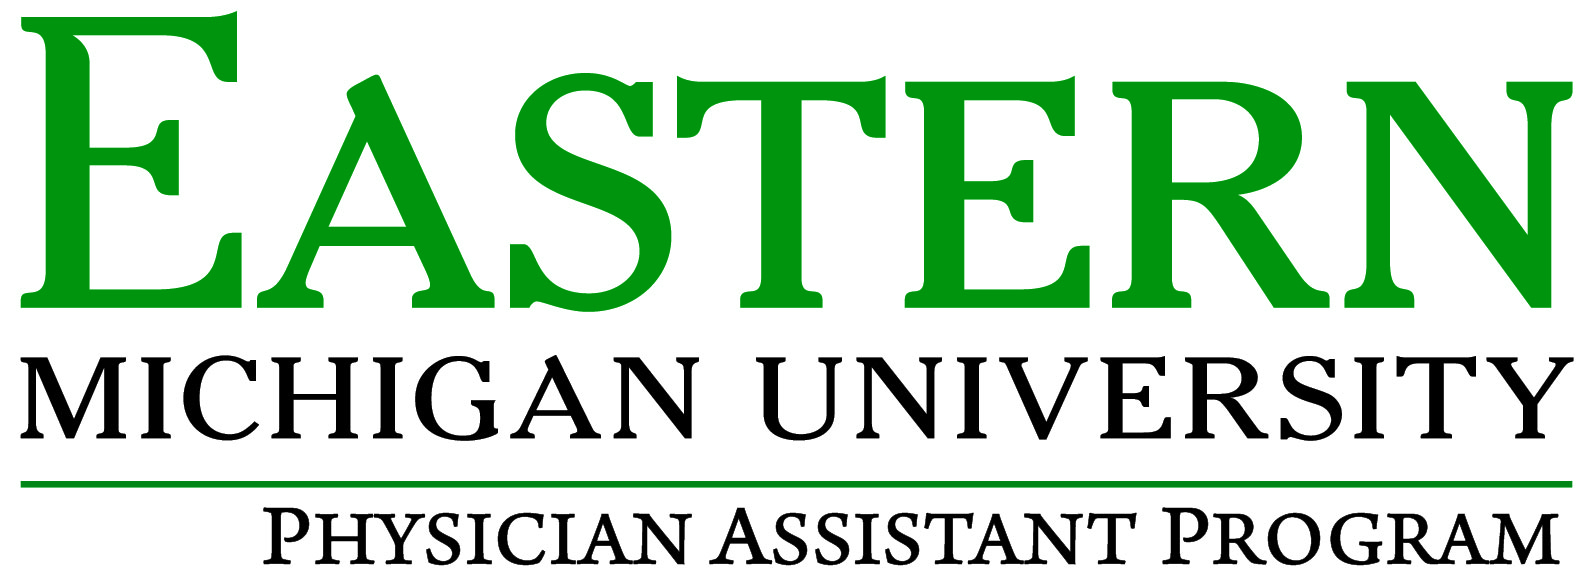 Eastern Michigan University Physician Assistant Program